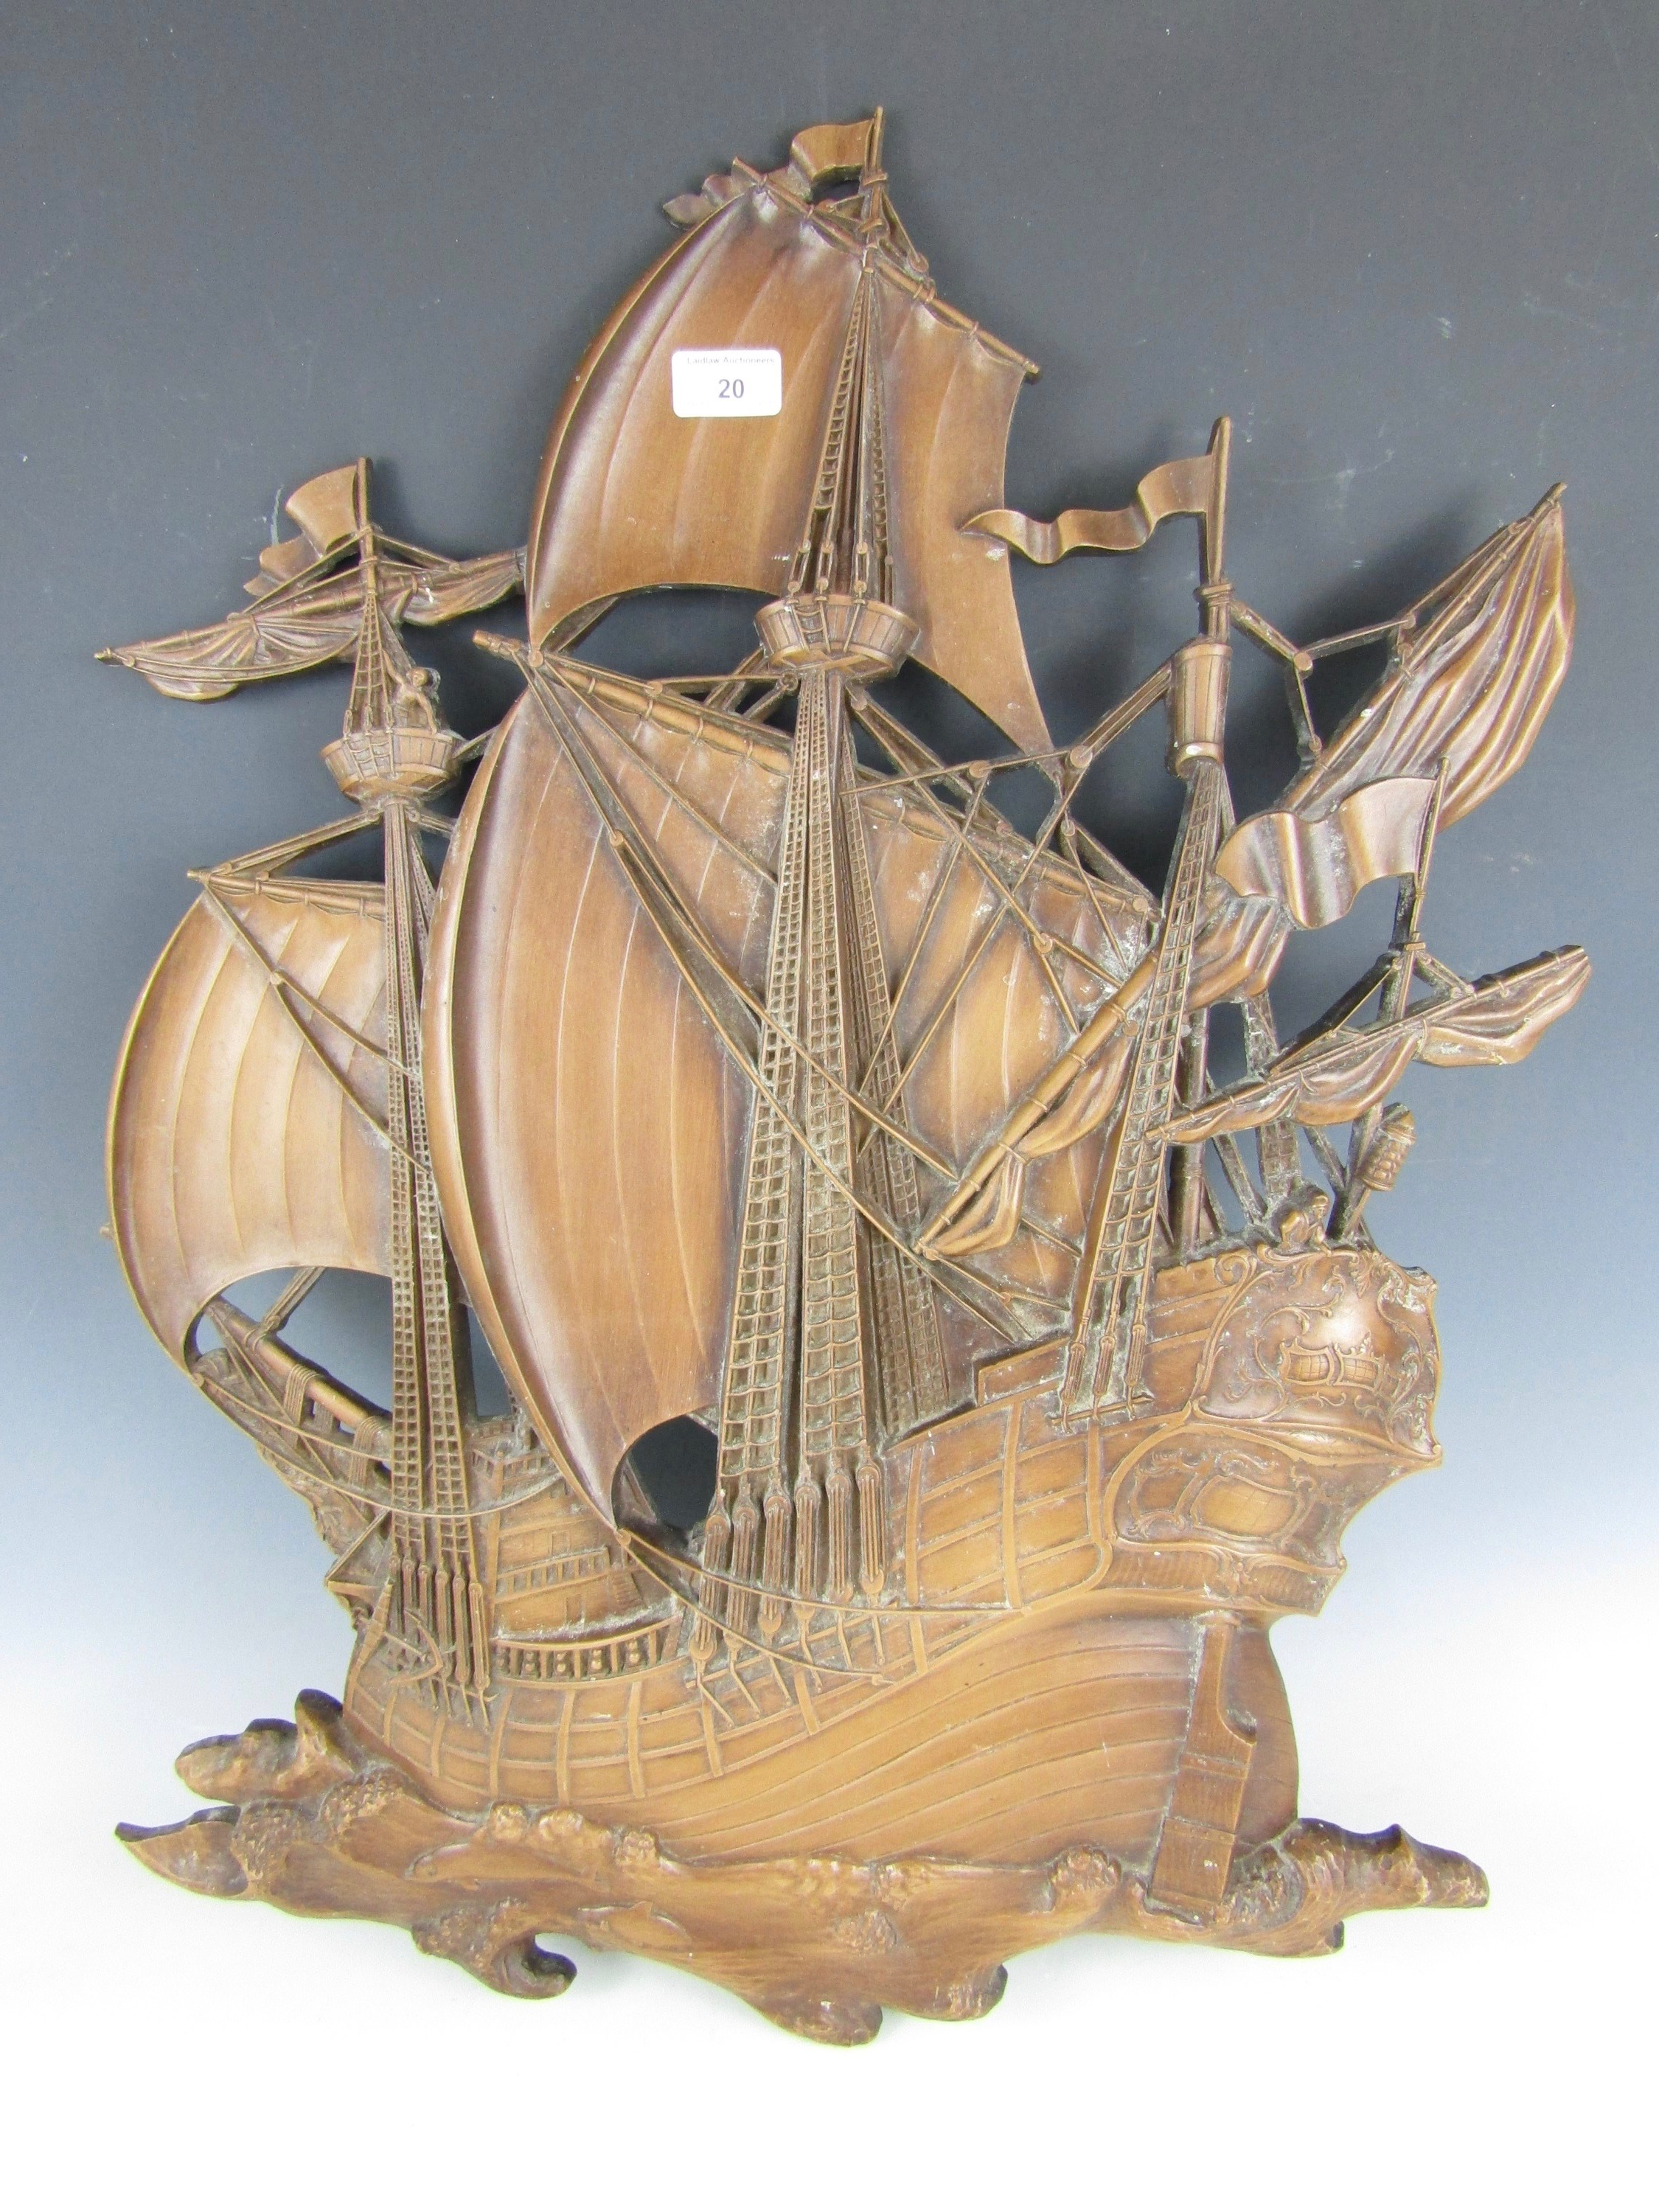 Lot 20 - A vintage moulded resin wall plaque modelled as a galleon, 73 cm